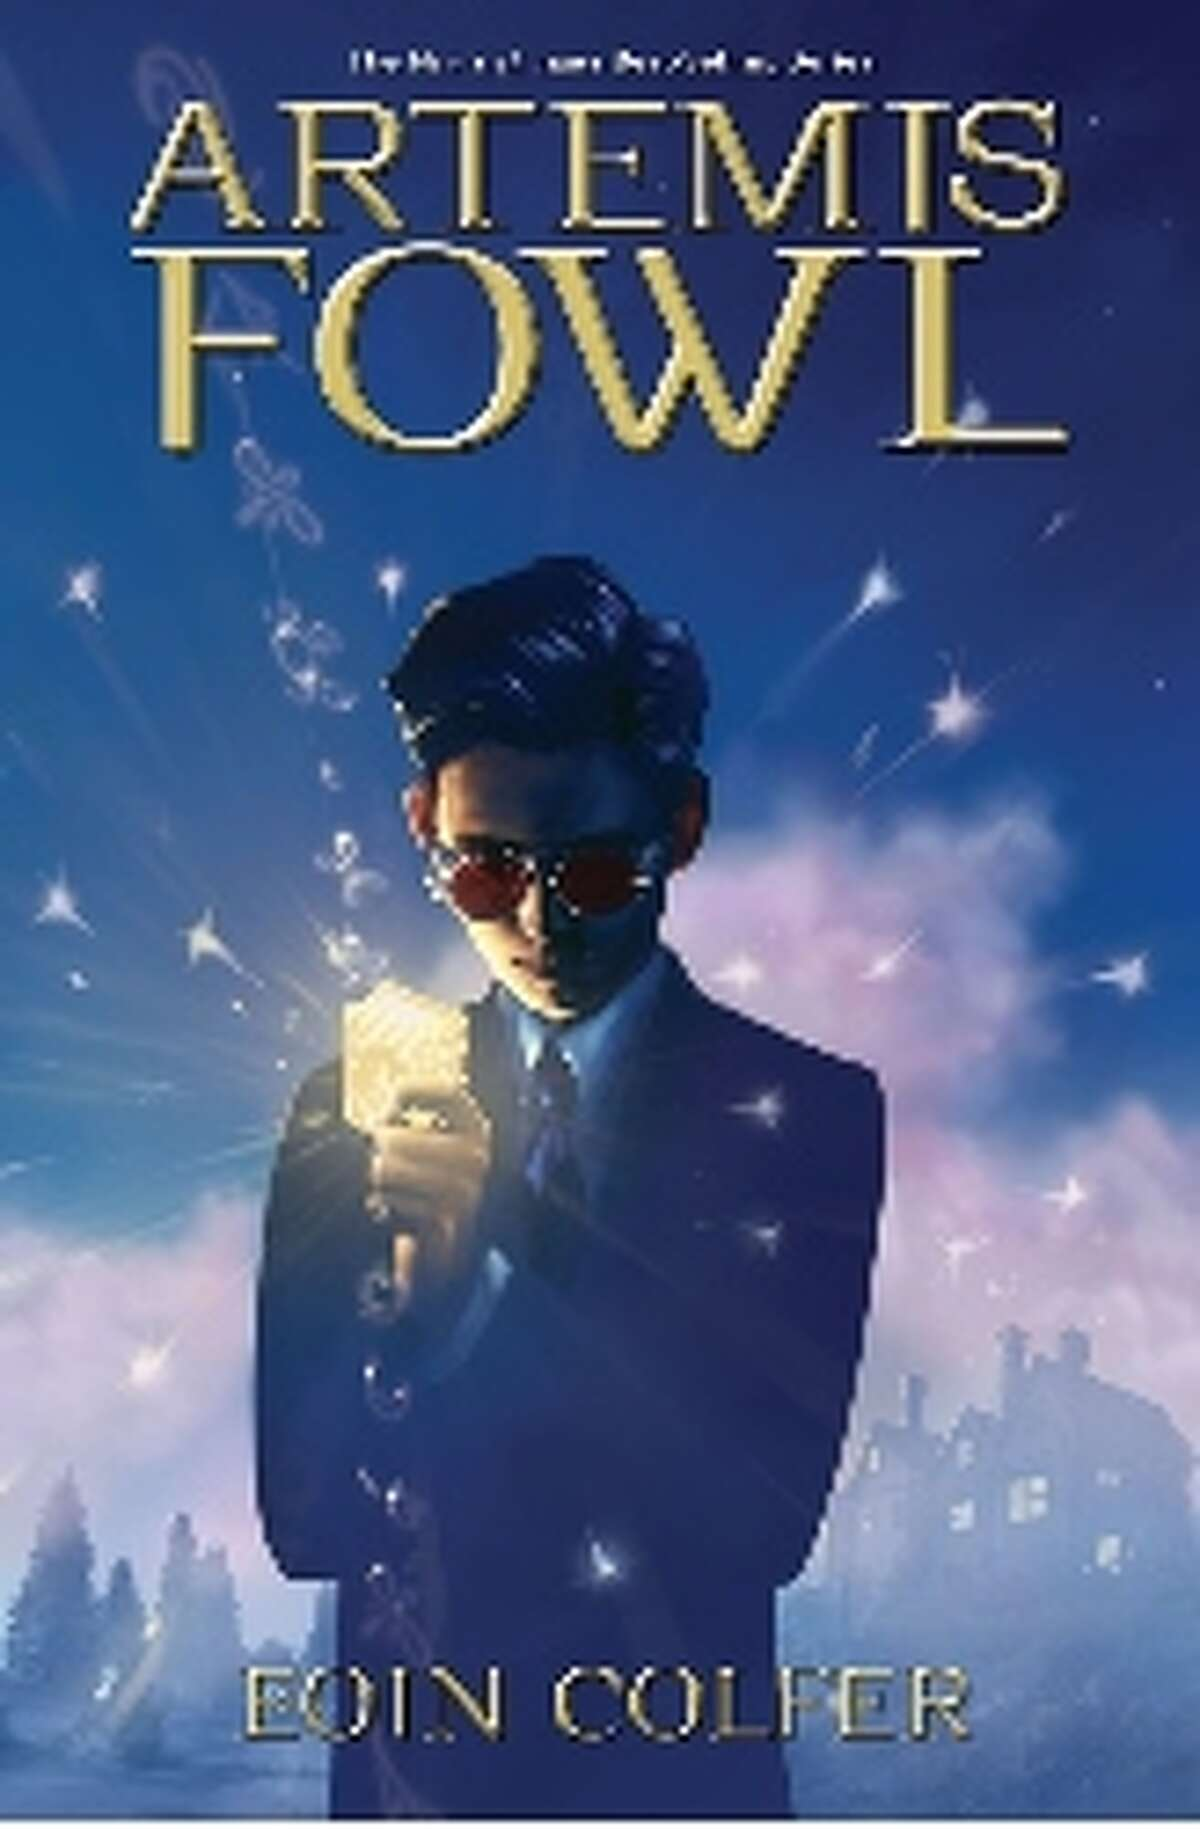 Artemis FowlThe Artemis Fowl books, written by Eoin Colfer and published between 2001 and 2012, tell the story of a young, genius master criminal named (of course) Artemis Fowl and his interactions with a secret community of fairies.The film adaptation is directed by Kenneth Branagh (